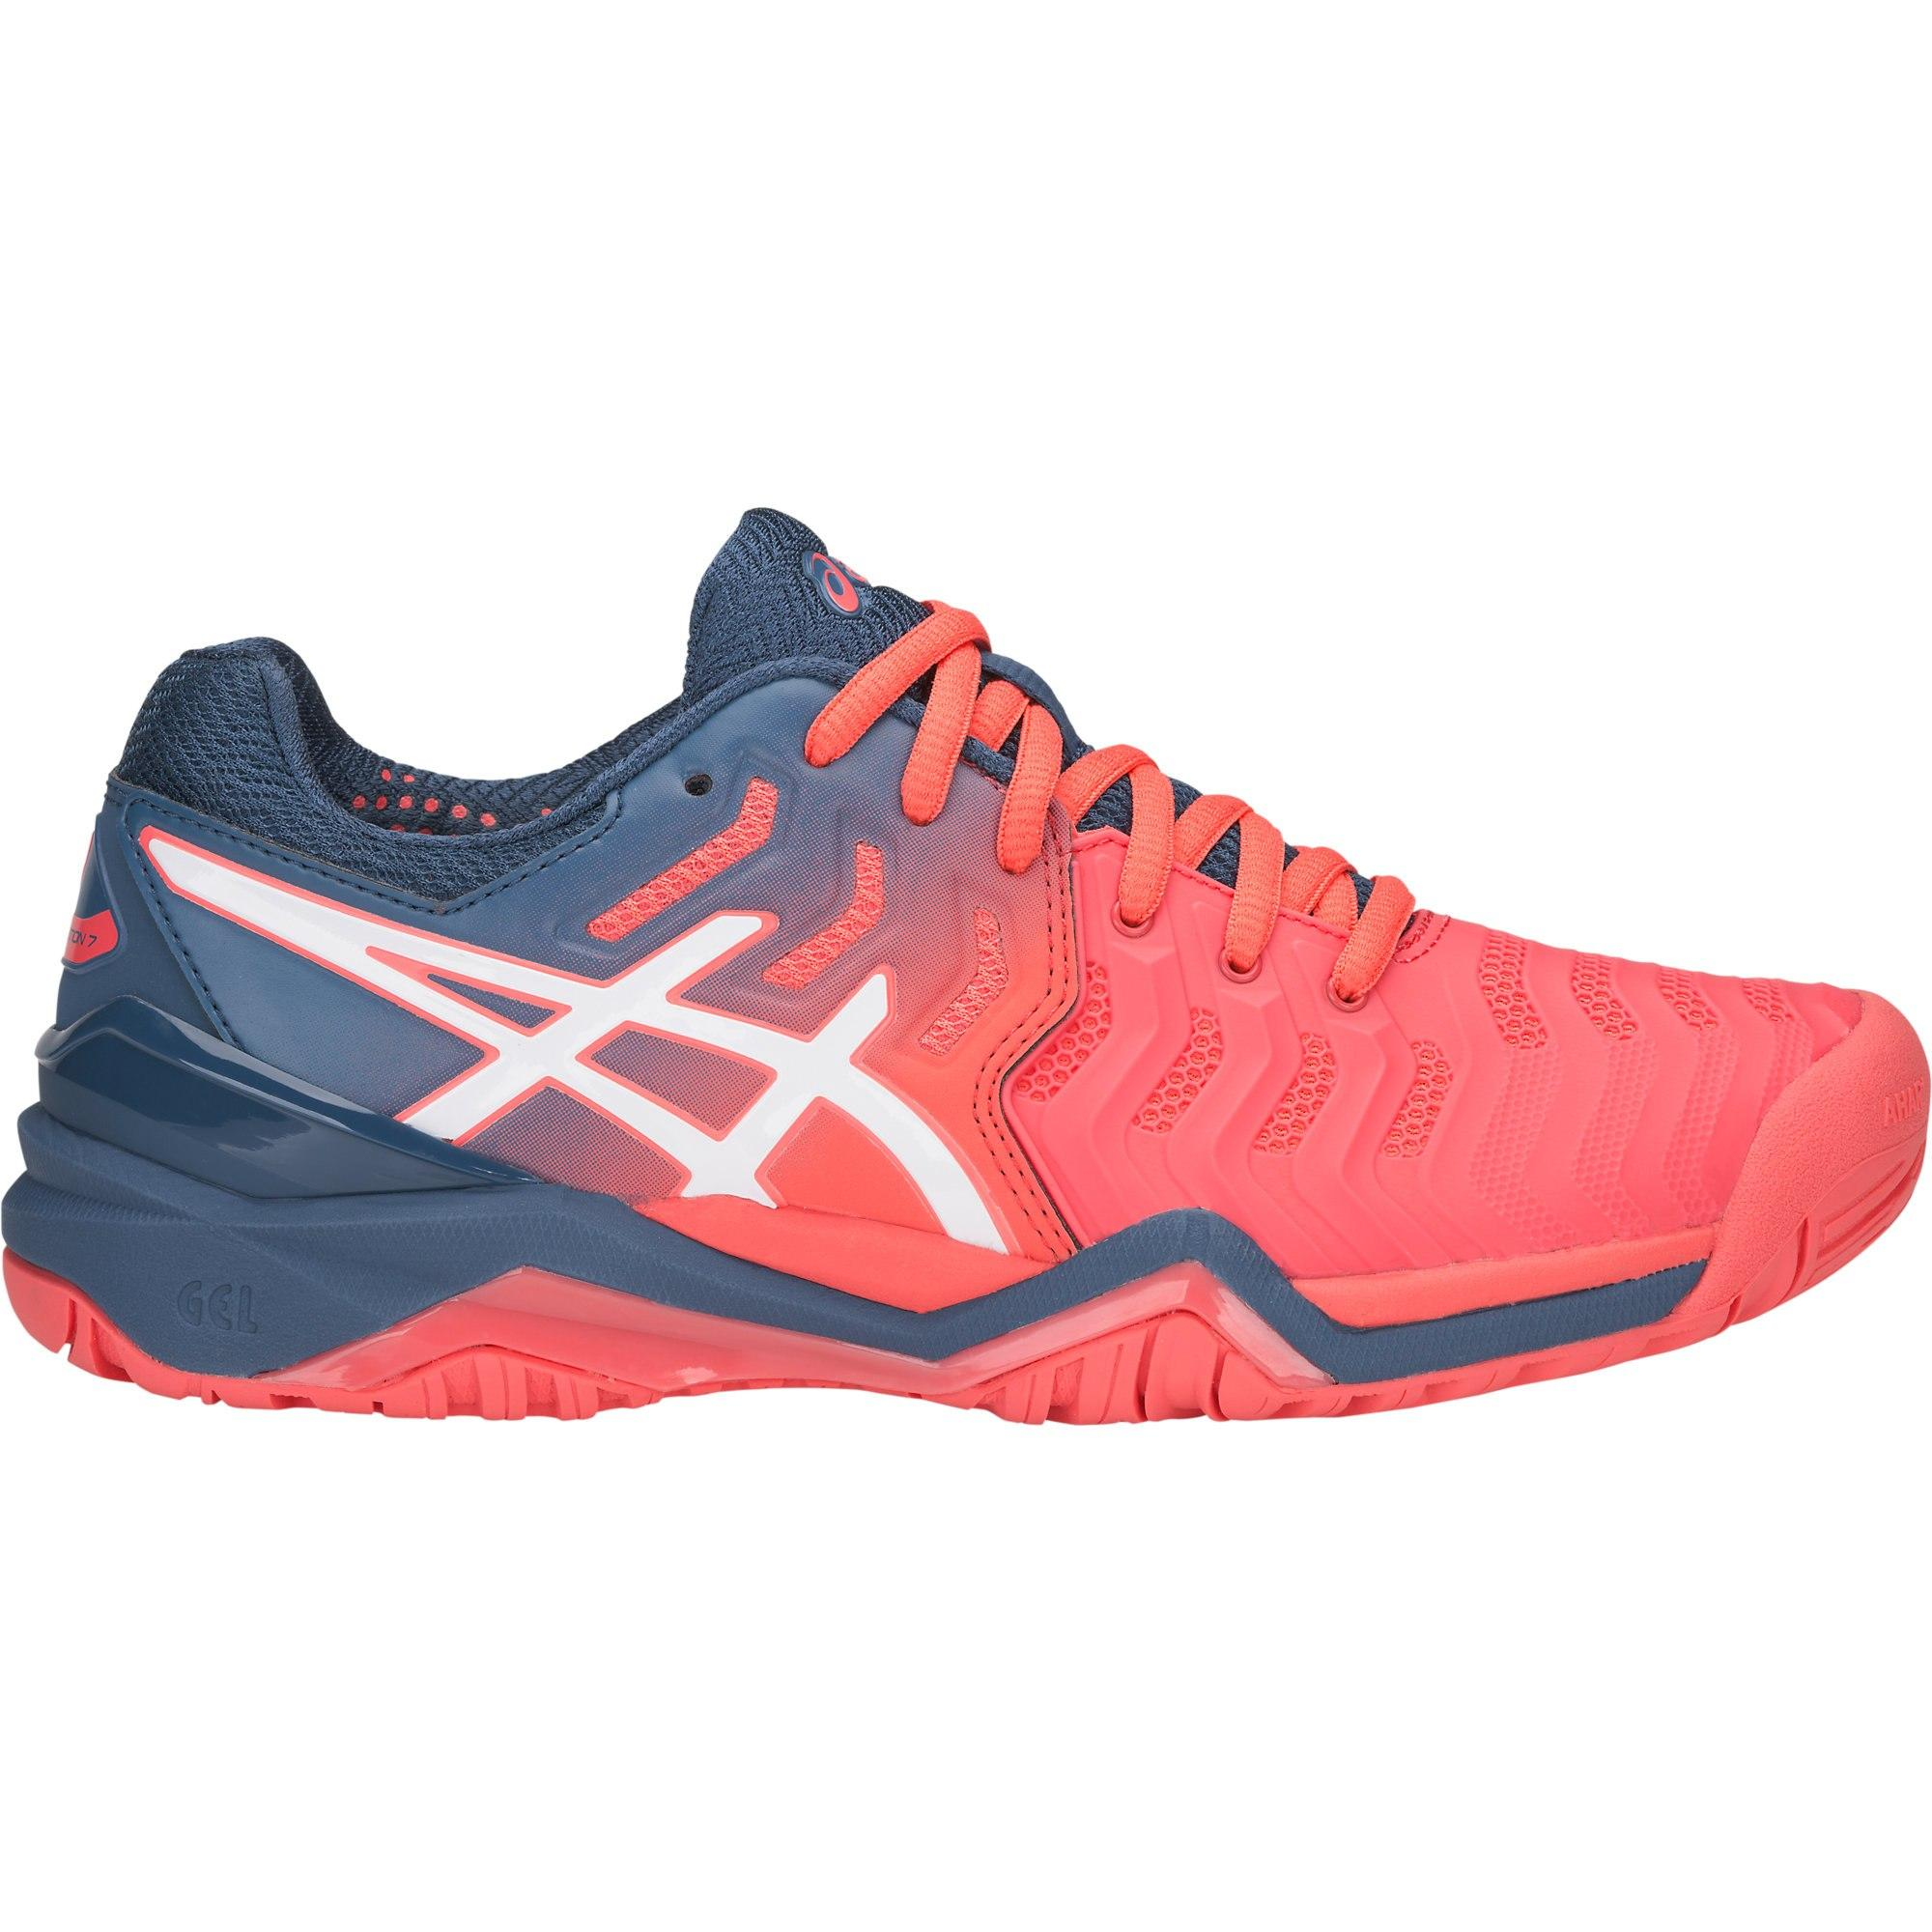 f4b42d405cae Asics Womens GEL-Resolution 7 Tennis Shoes - Papaya Blue - Tennisnuts.com